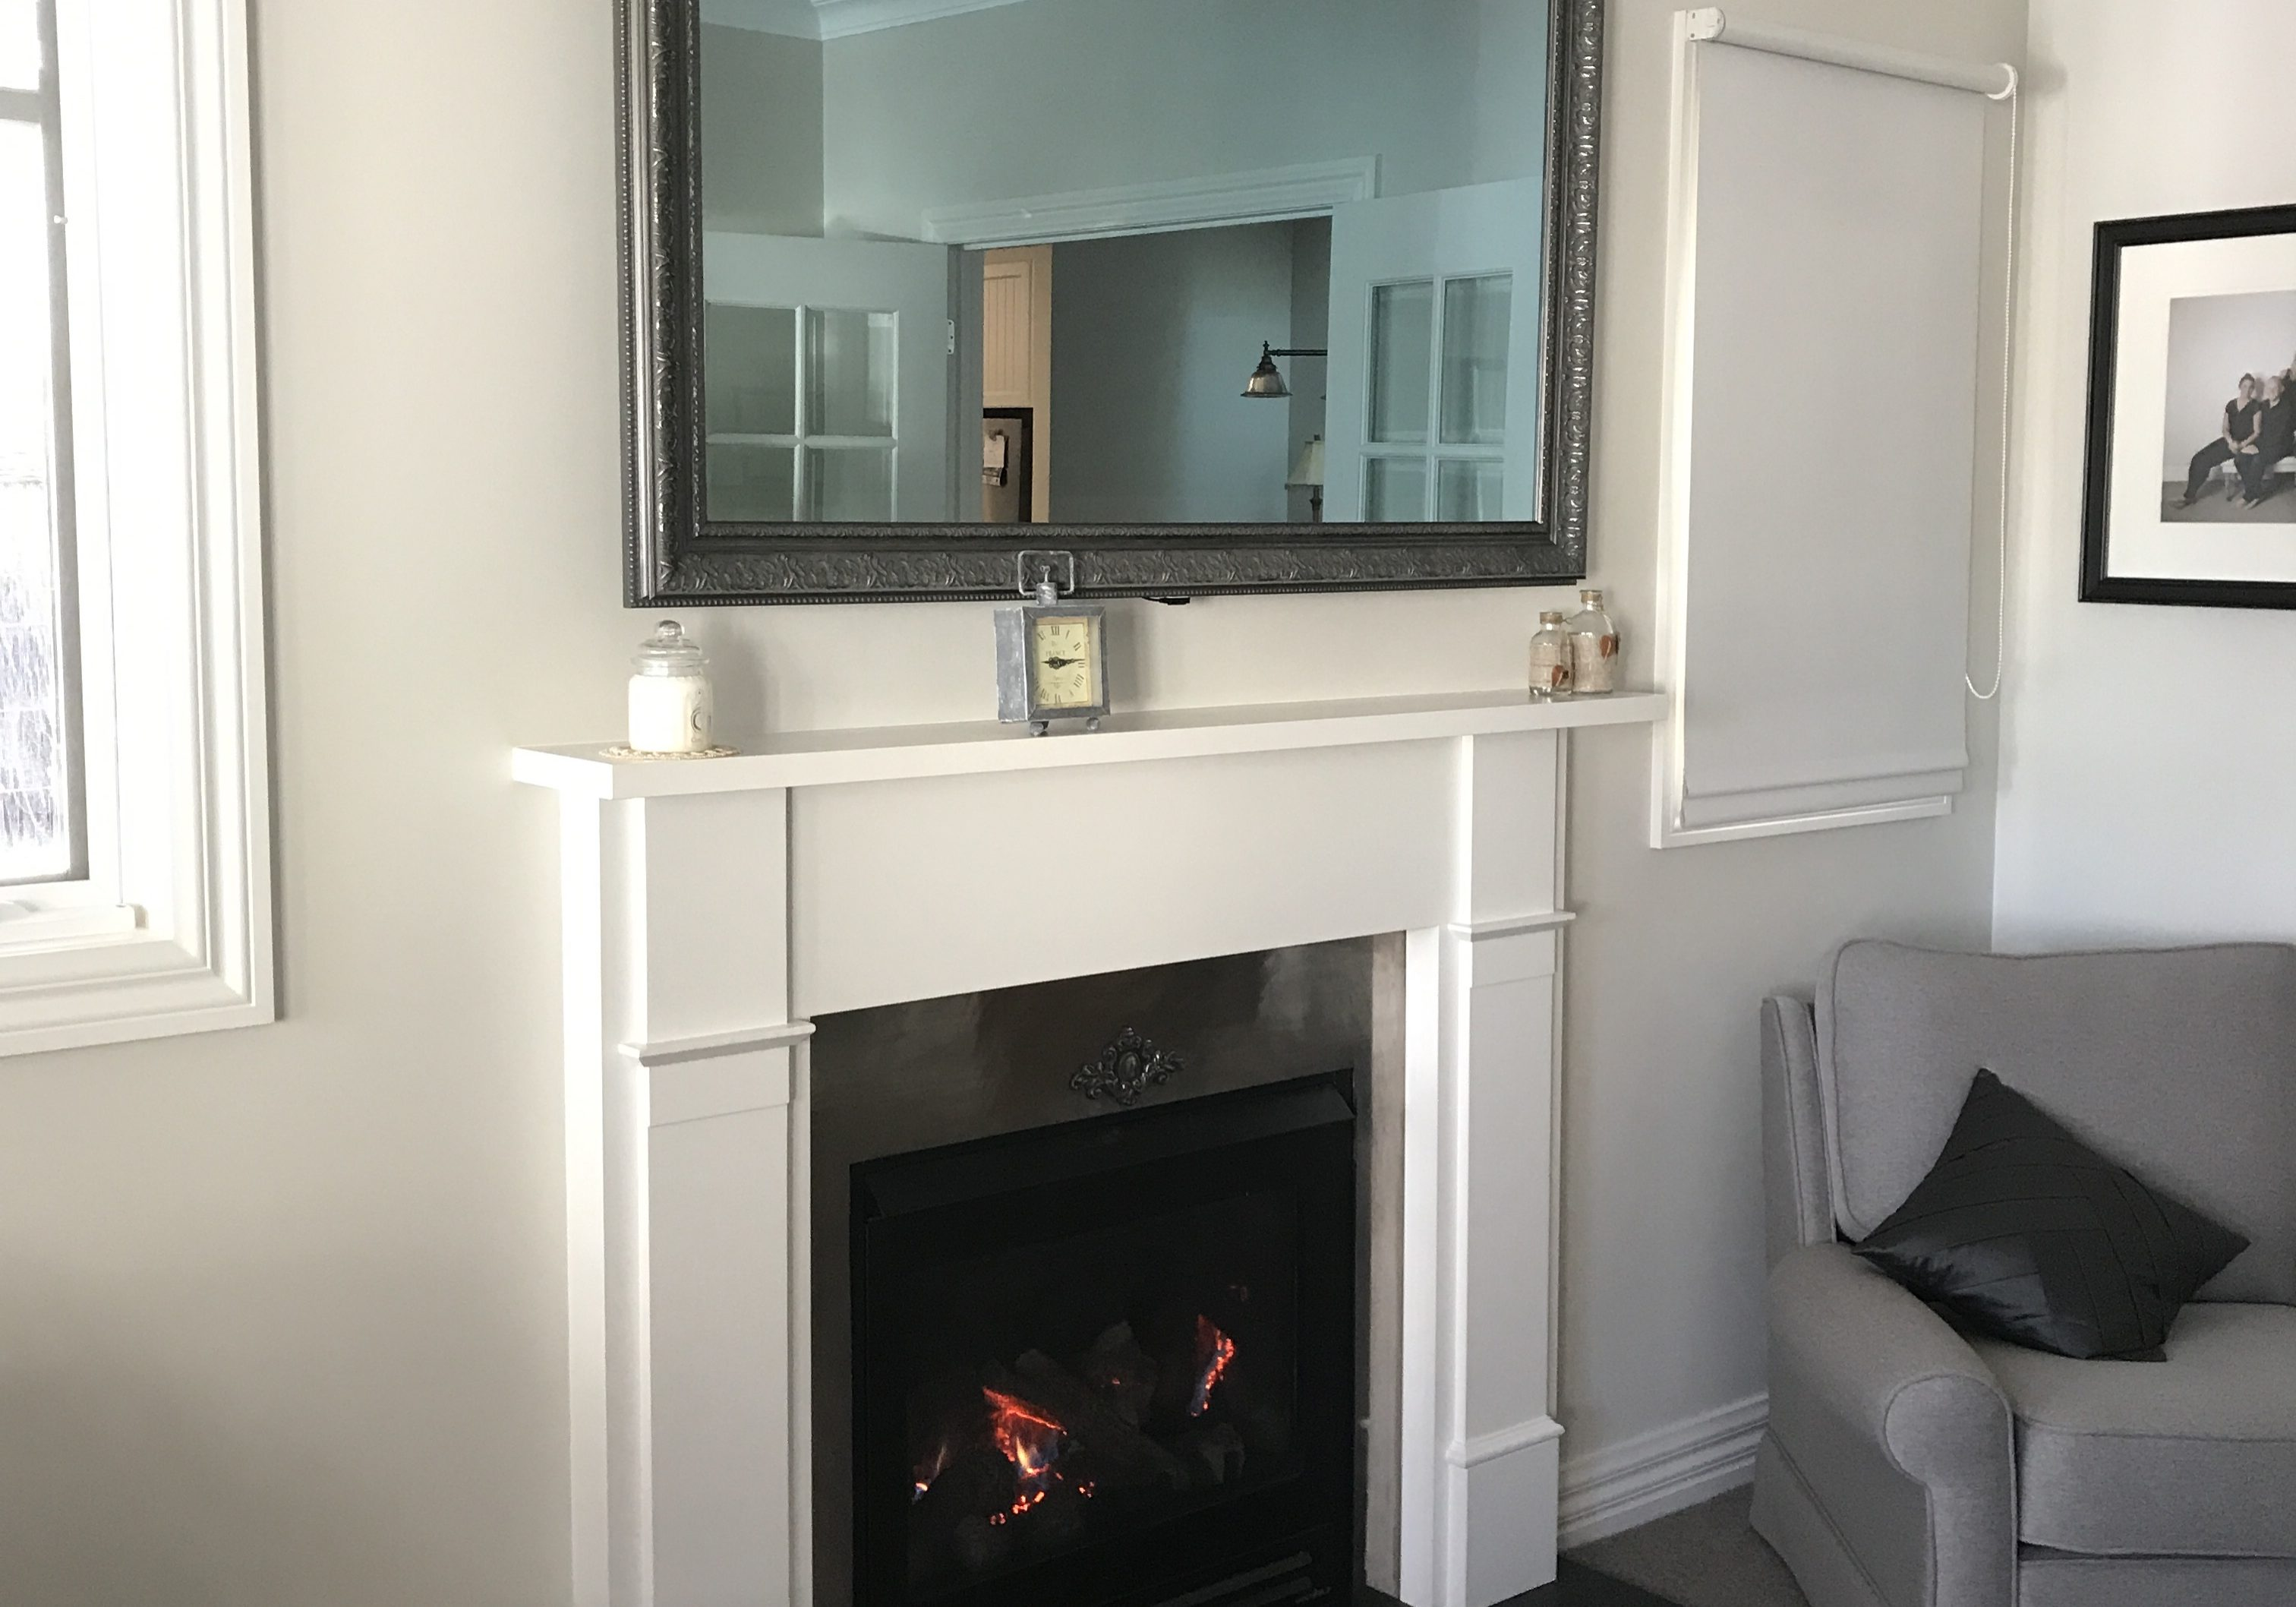 Samsung LED Mirror TV - Hidden Television over a fire place framed